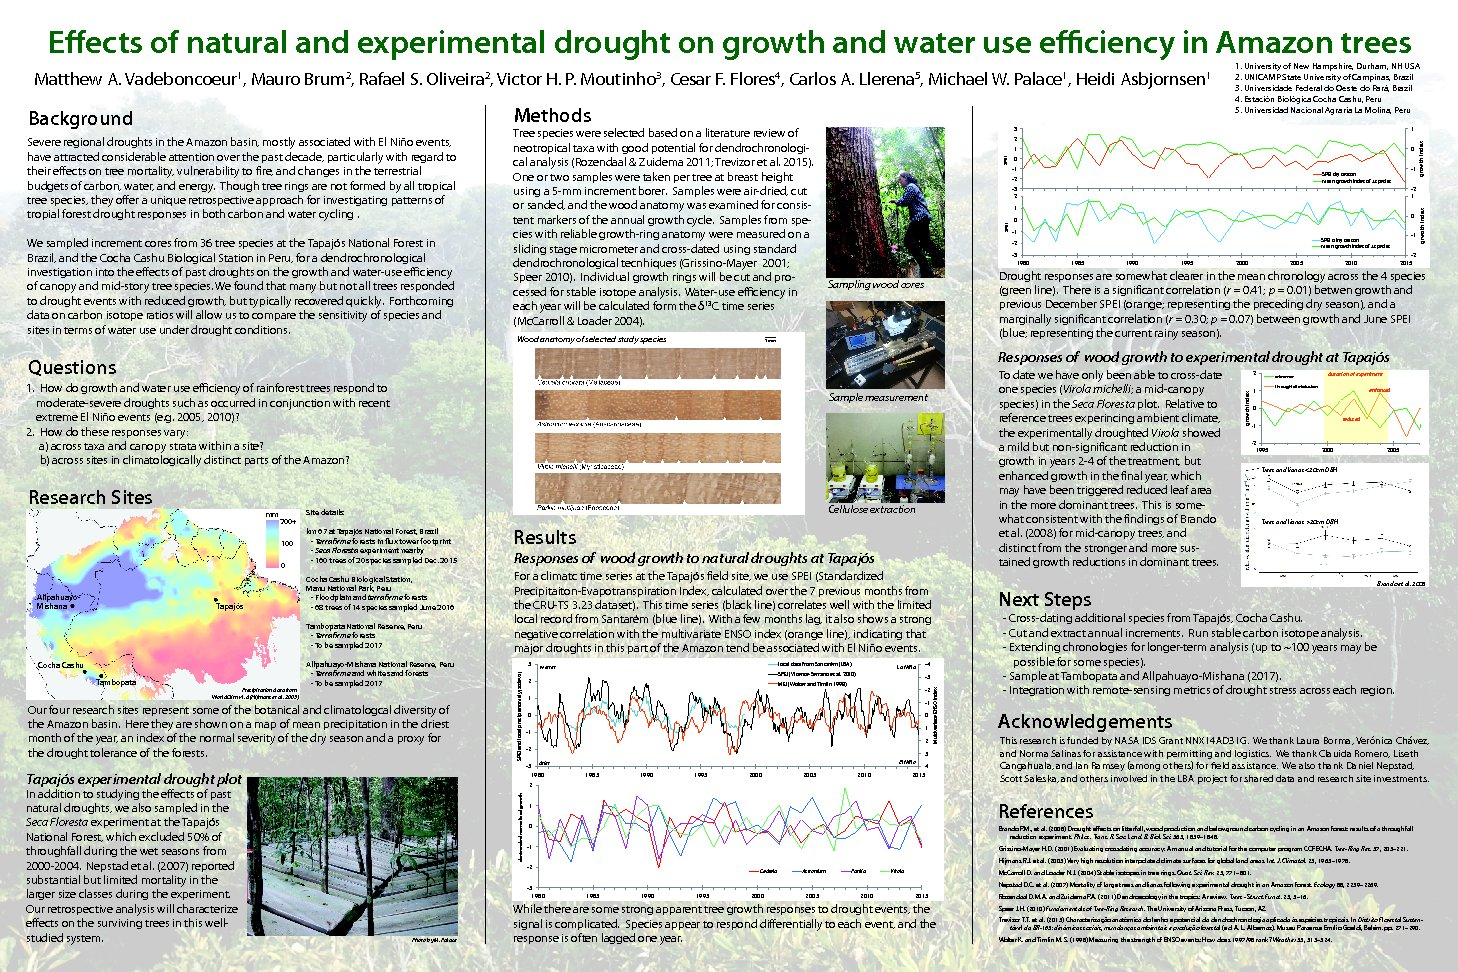 Effects Of Natural And Experimental Drought On Growth And Water Use Efficiency In Amazon Trees by mattvad